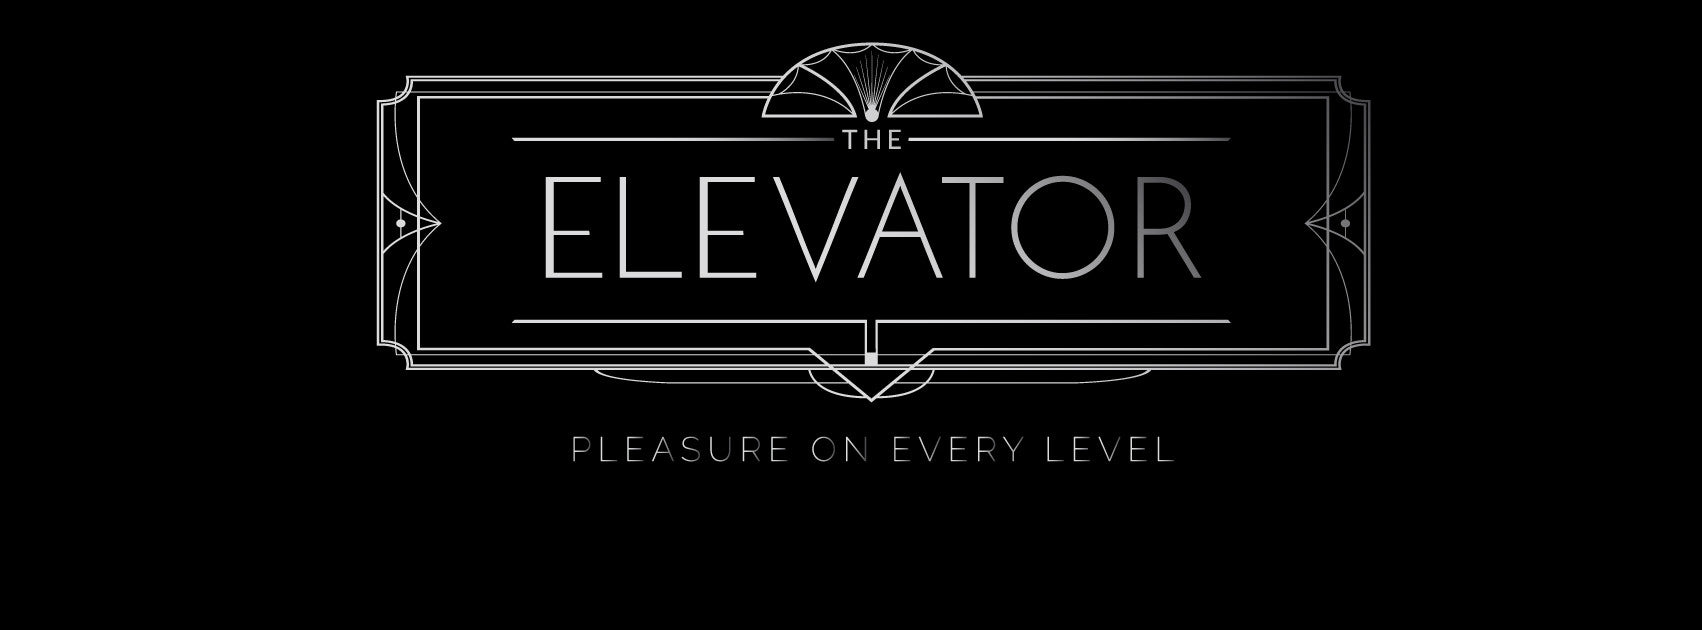 The Elevator - Quality Sex Toys Affordable Prices